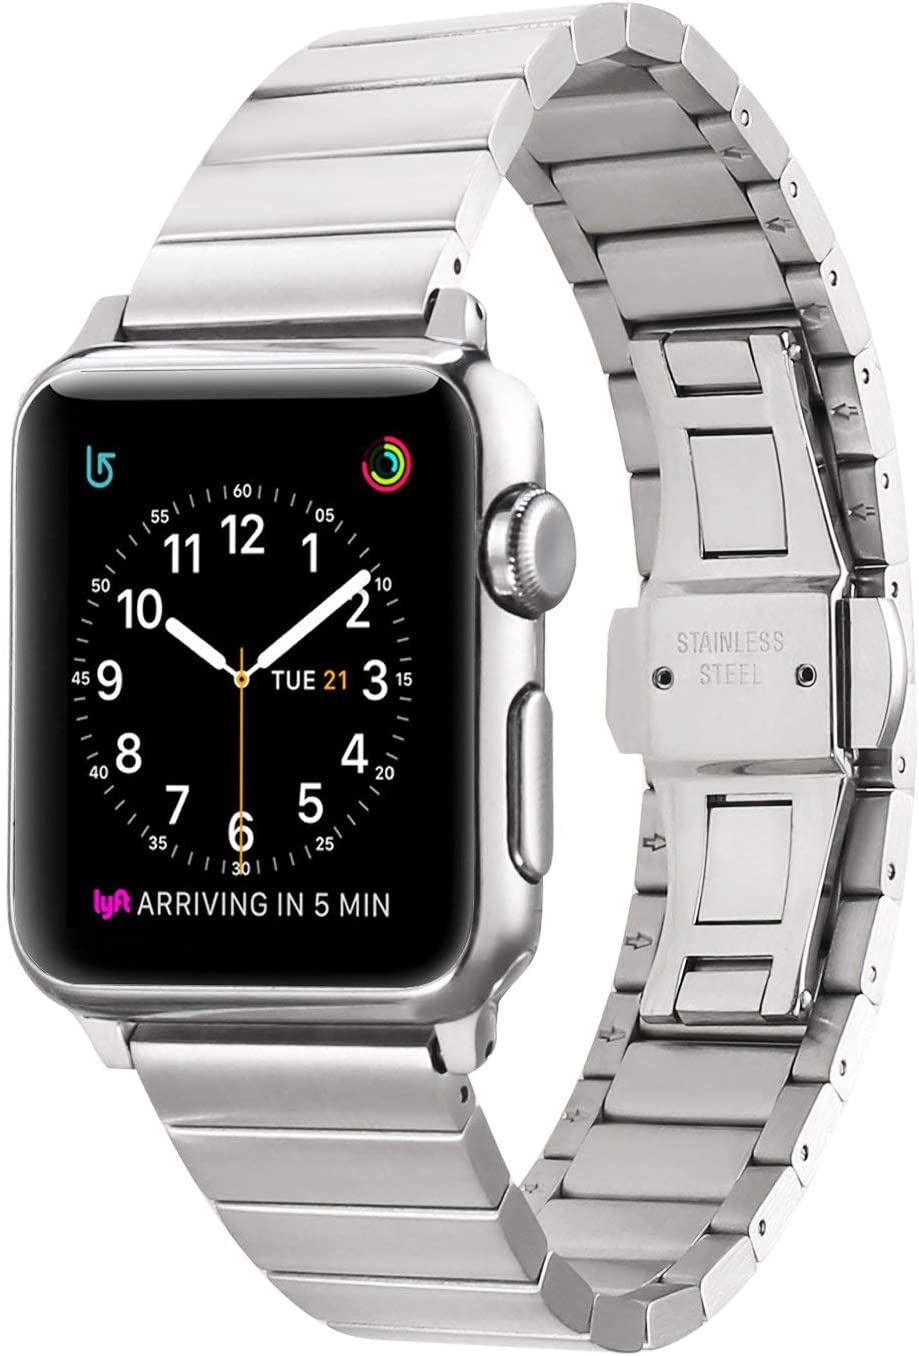 SaNgaiMEi Compatible with Apple Watch Band Series 40mm 38mm, Stainless Steel iWatch Band with Series 6 Series 5 Series 4 Series 3 Series 2 Series 1 Strap Men